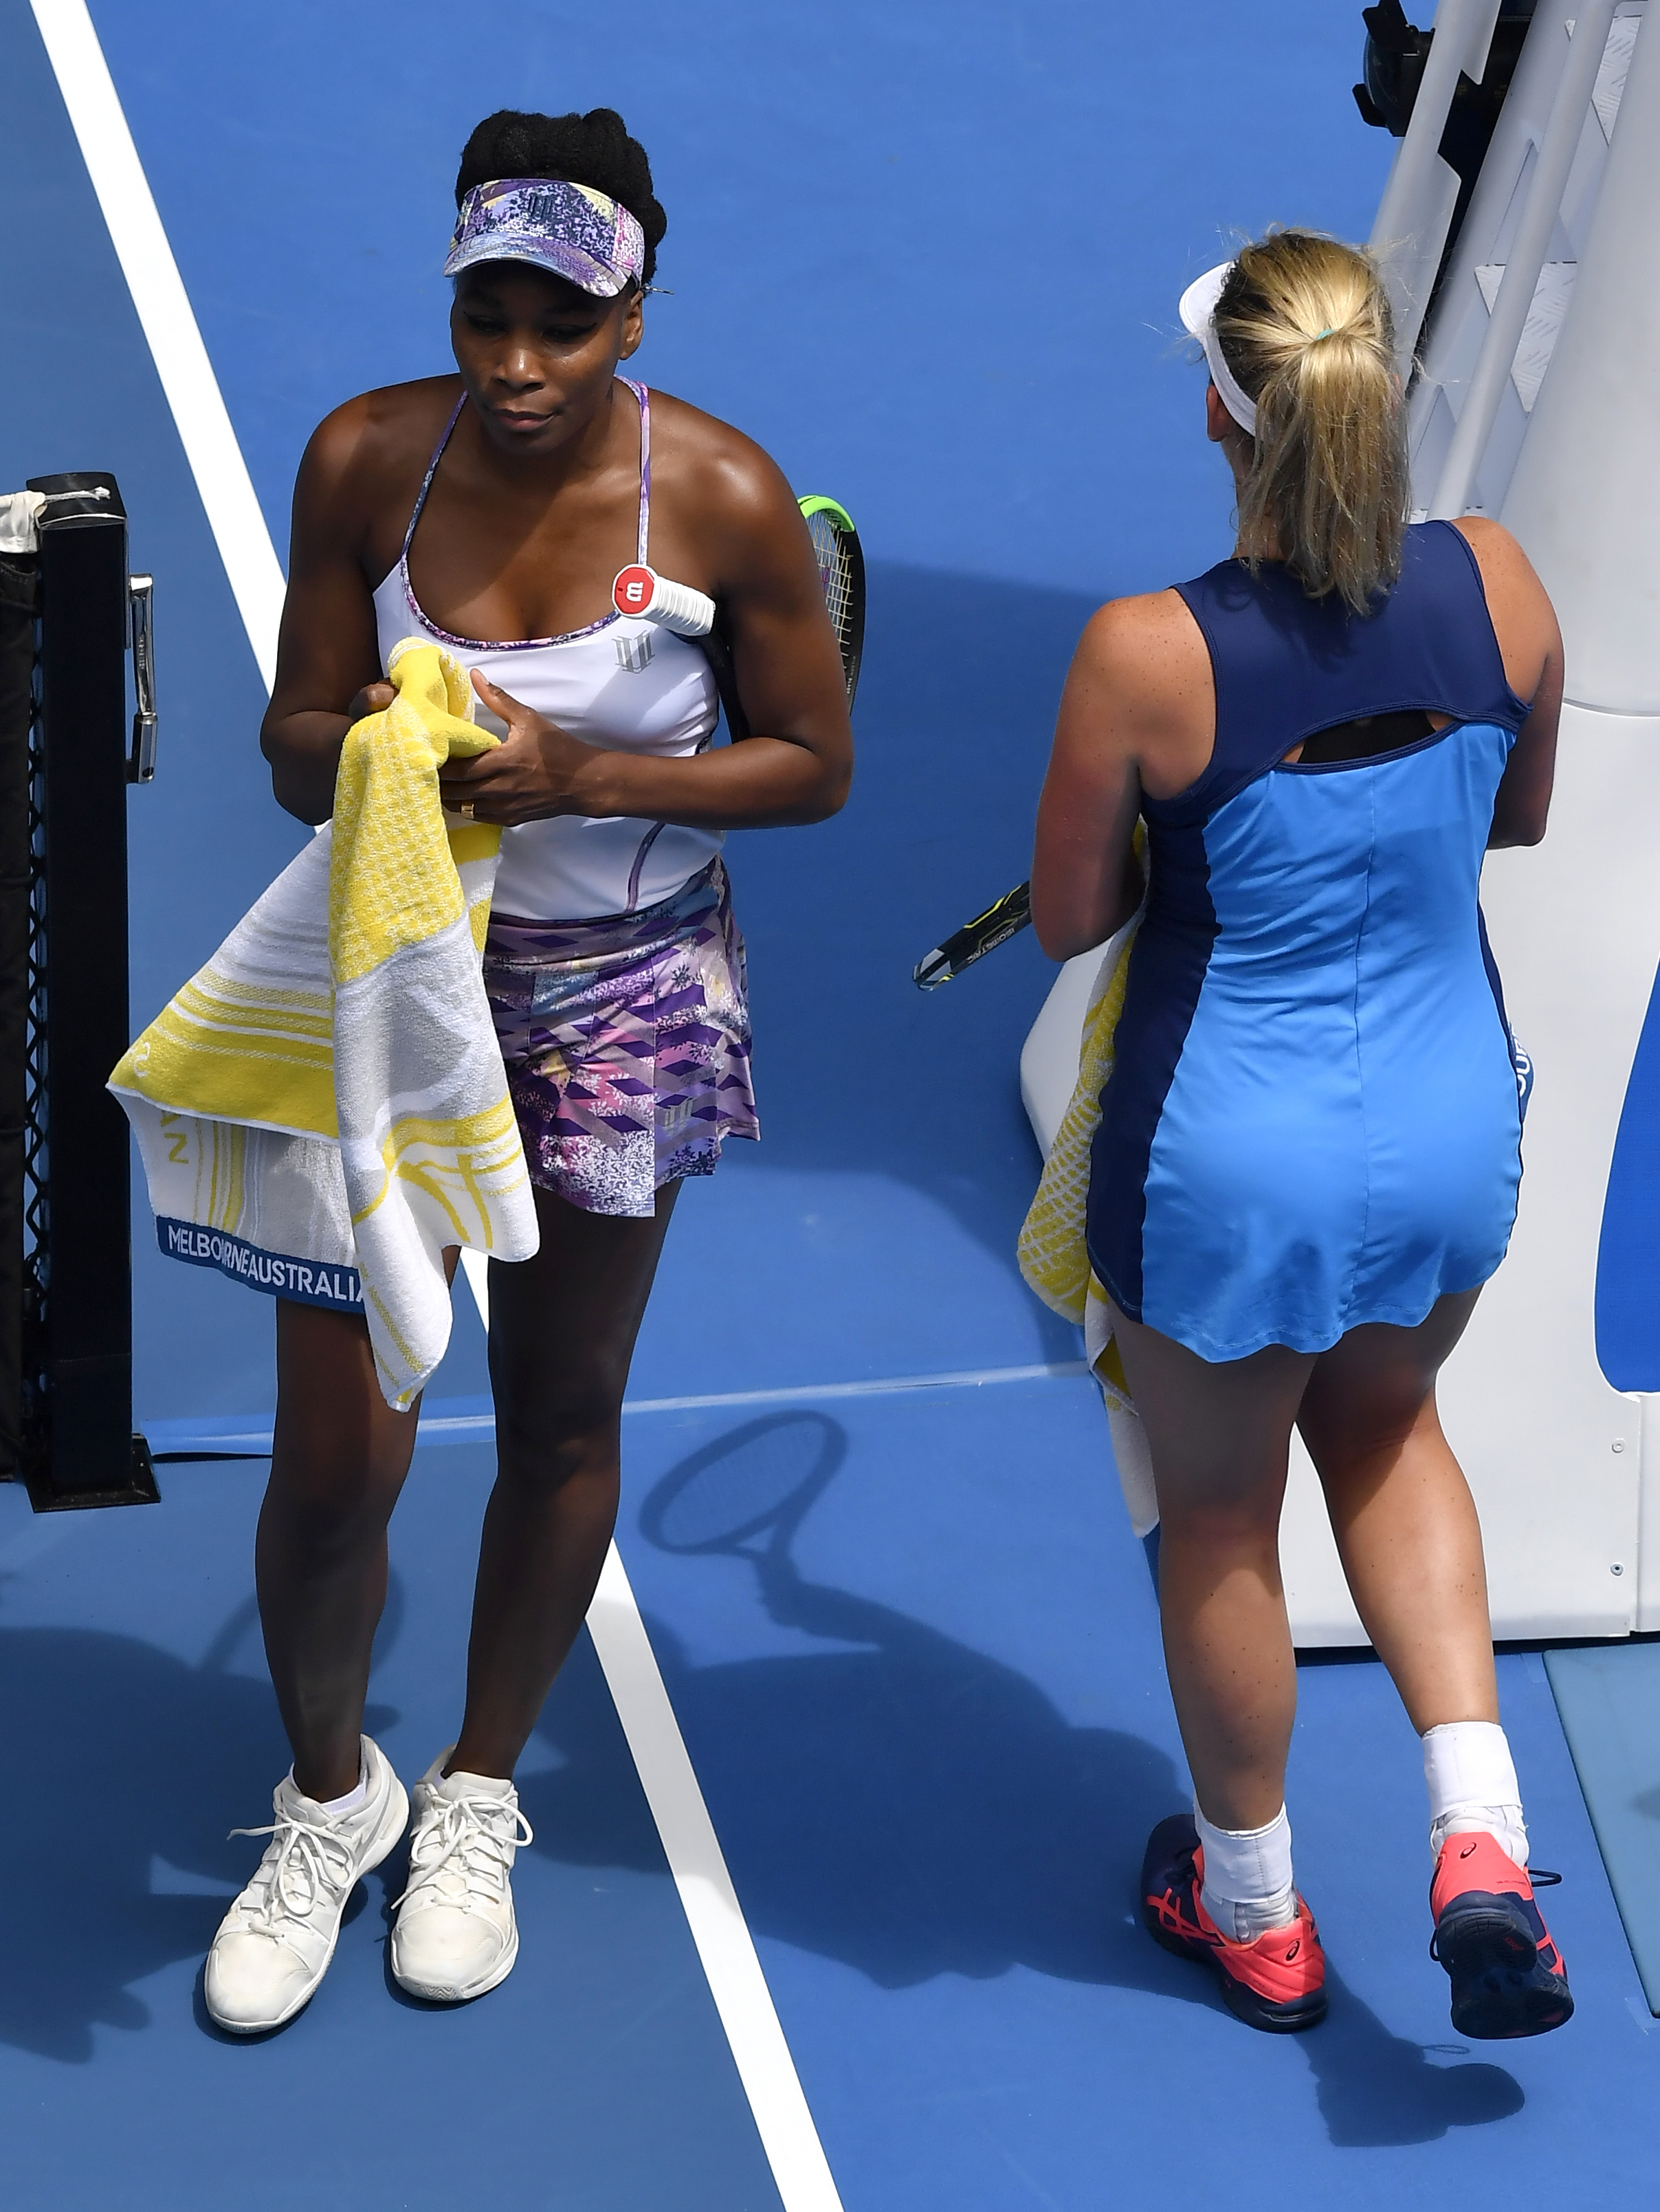 United States' Venus Williams, left, walks past compatriot Coco Vandeweghe during their semifinal at the Australian Open tennis championships in Melbourne, Australia, Thursday, Jan. 26, 2017. (AP Photo/Andy Brownbill)